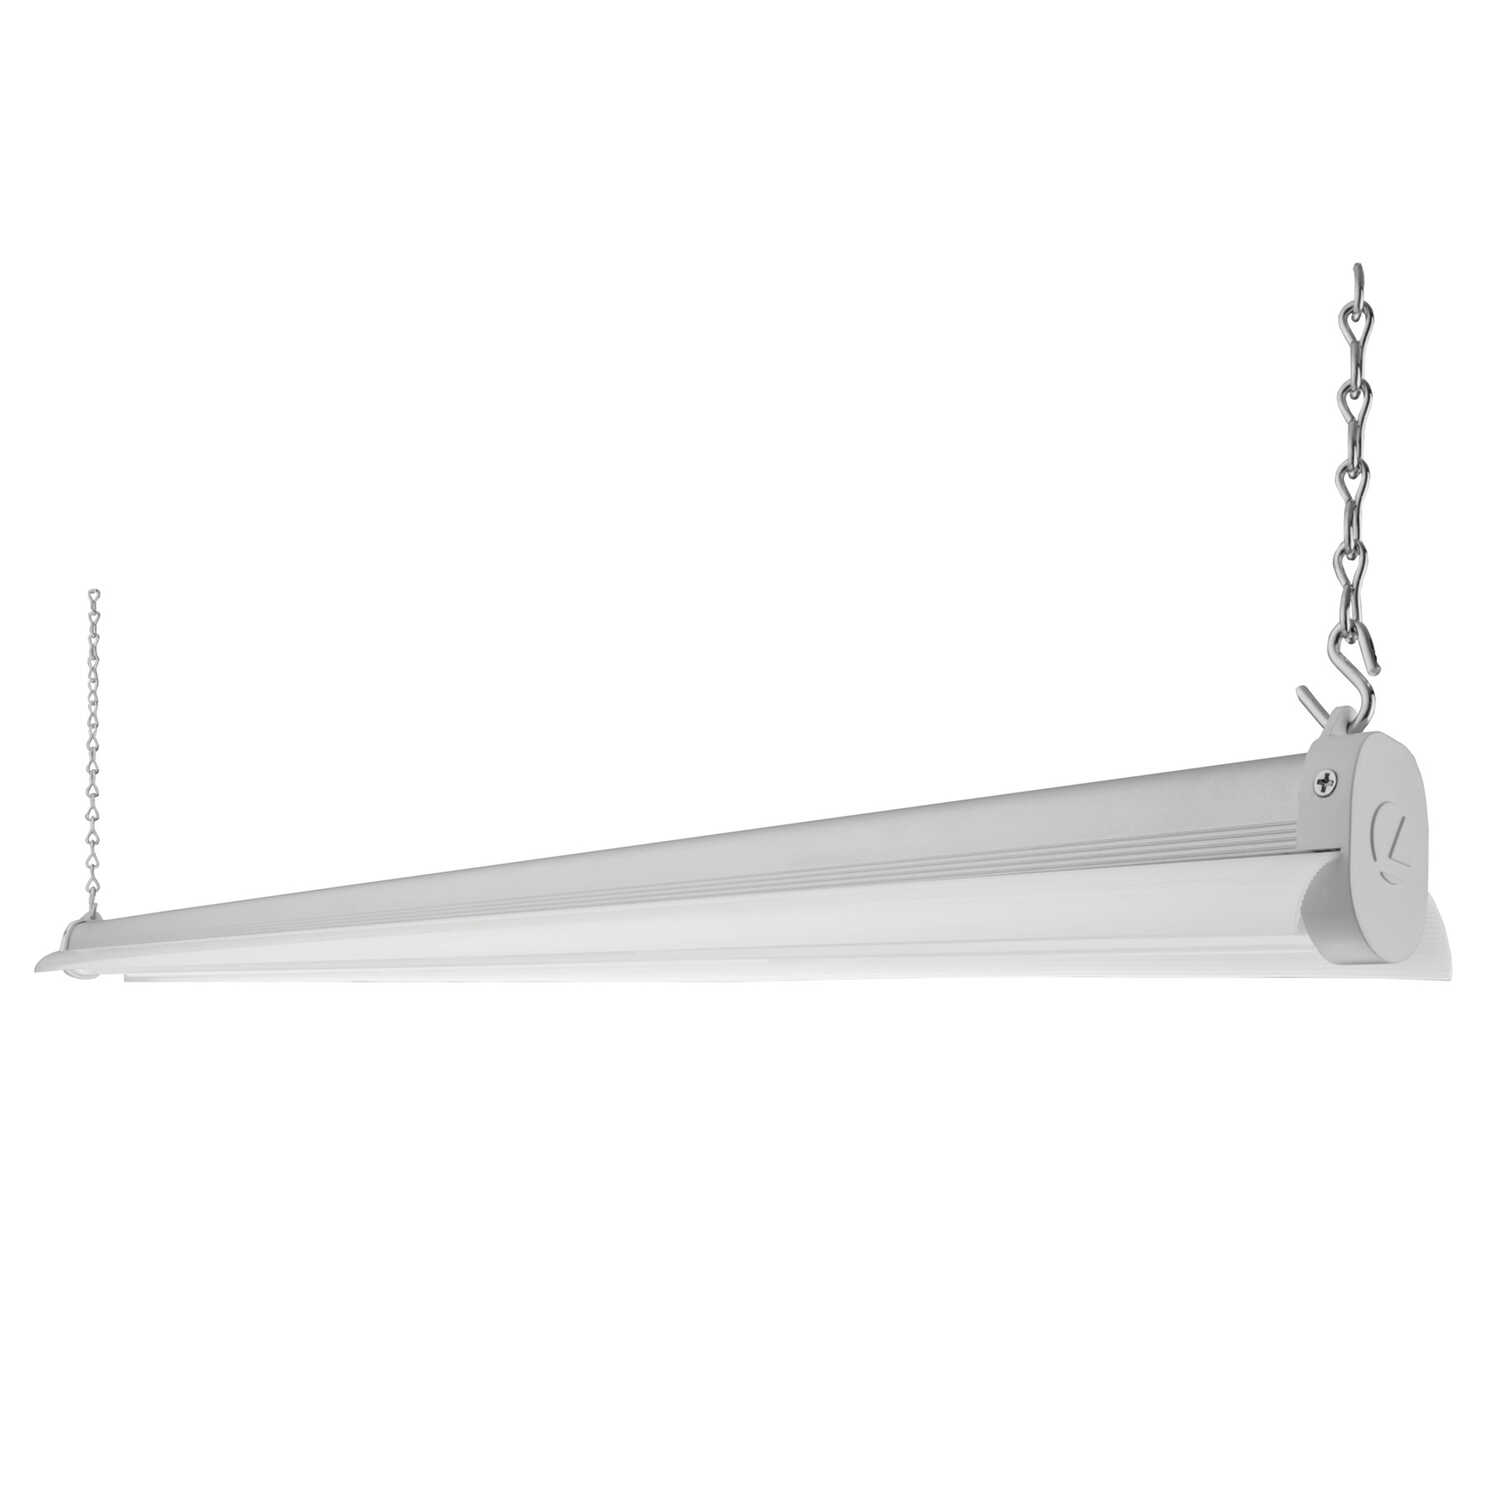 Lithonia Lighting  48 in. 36 watts LED  Shop Light